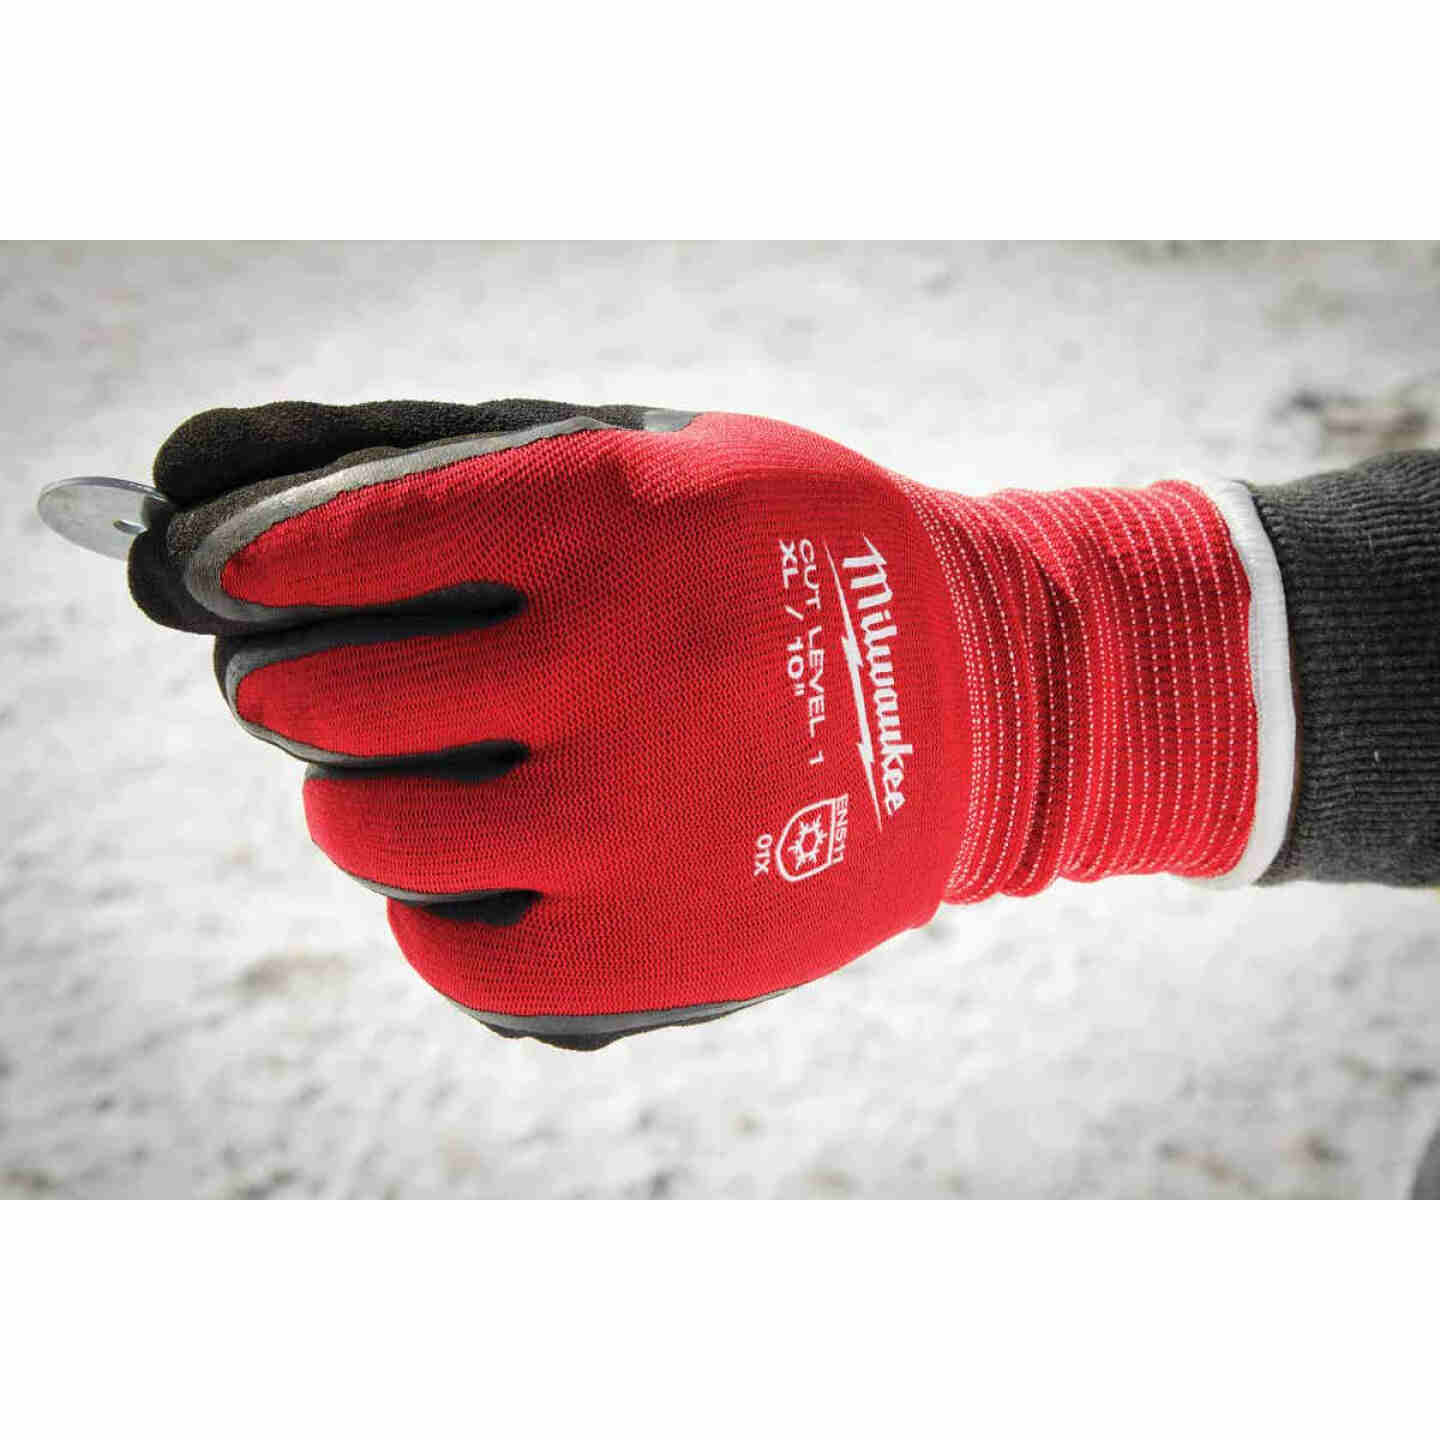 Milwaukee Unisex XL Latex Coated Cut Level 1 Insulated Work Glove Image 2